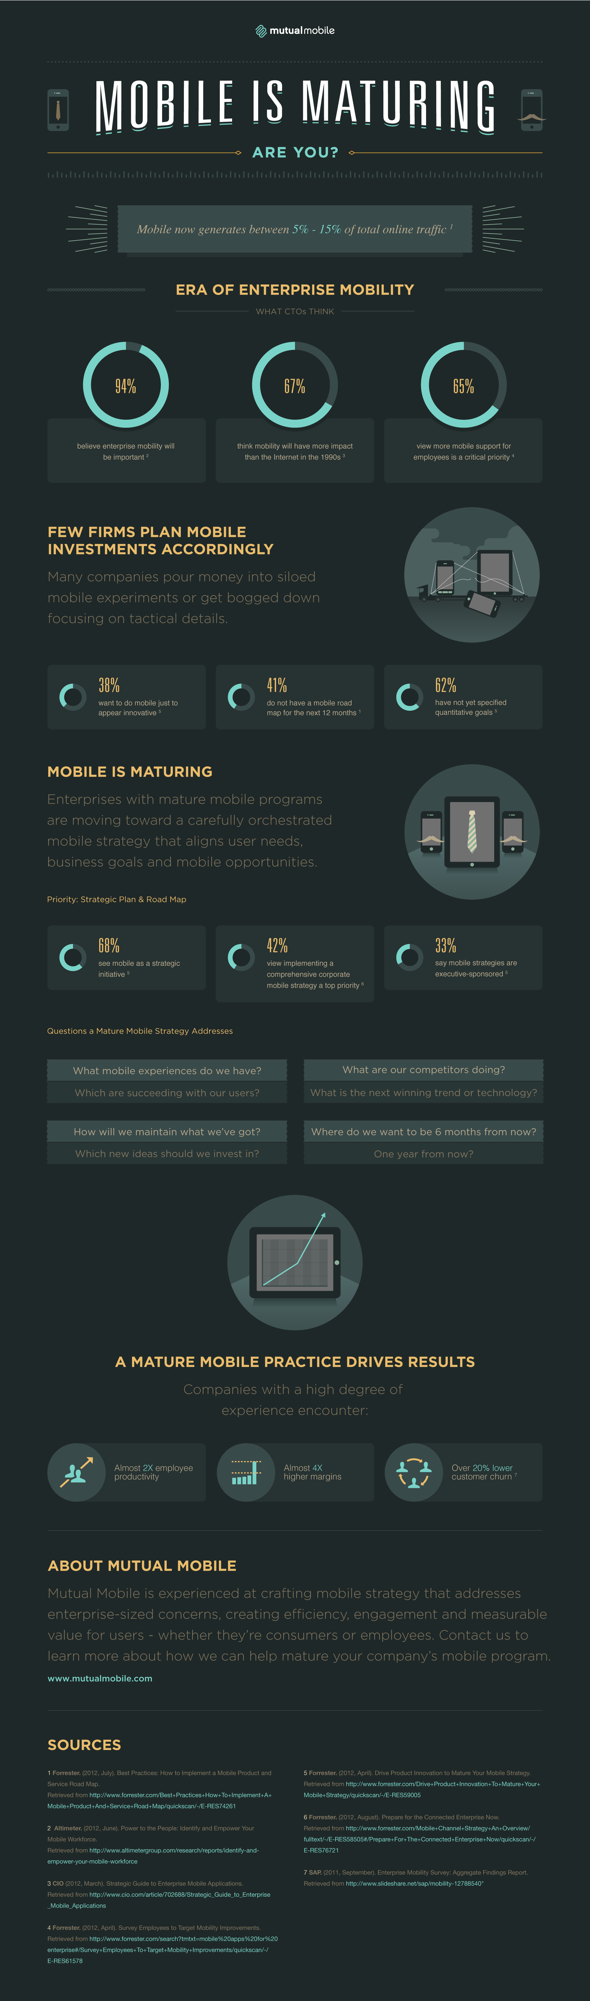 Infographic_MutualMobile_Maturity_2013